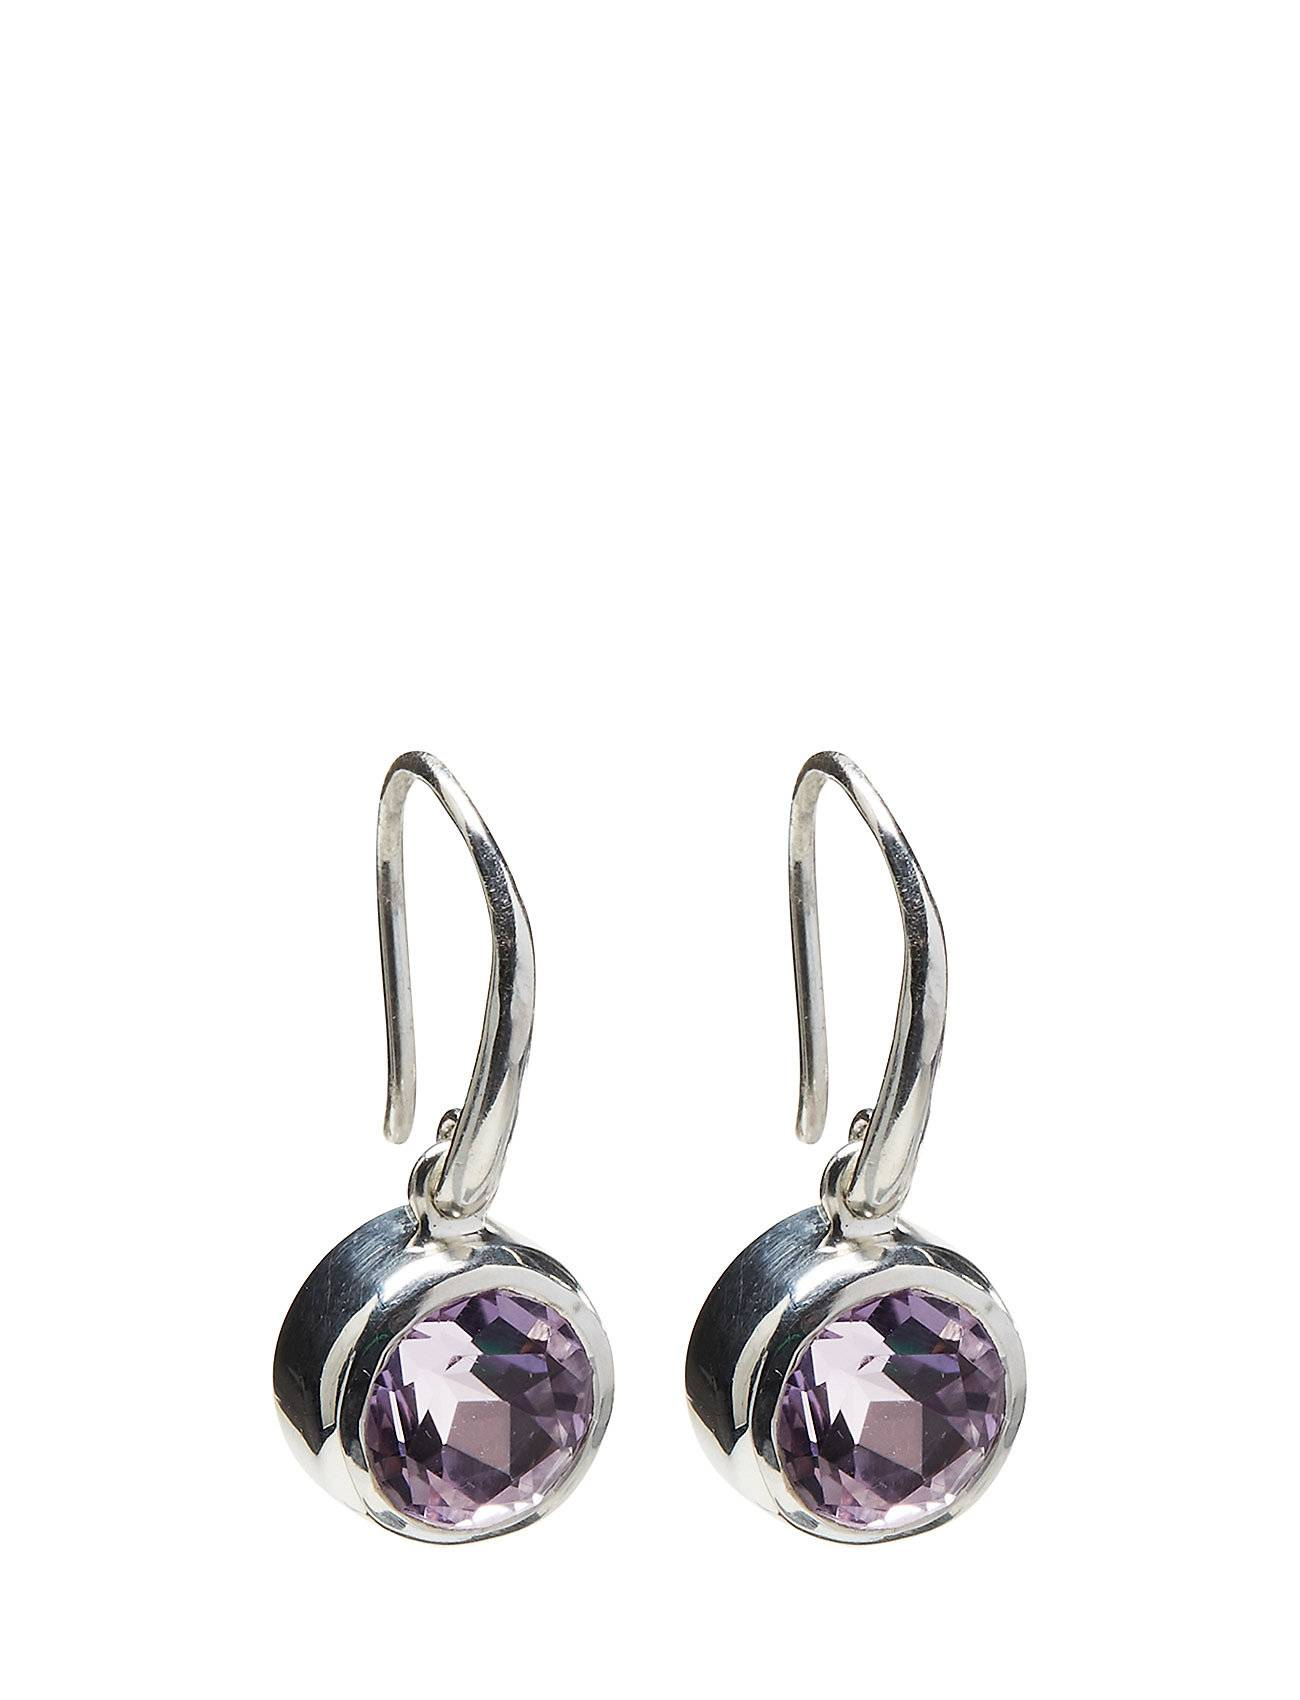 Syster P Lone Star Earrrings Pink Amethyst, Silver